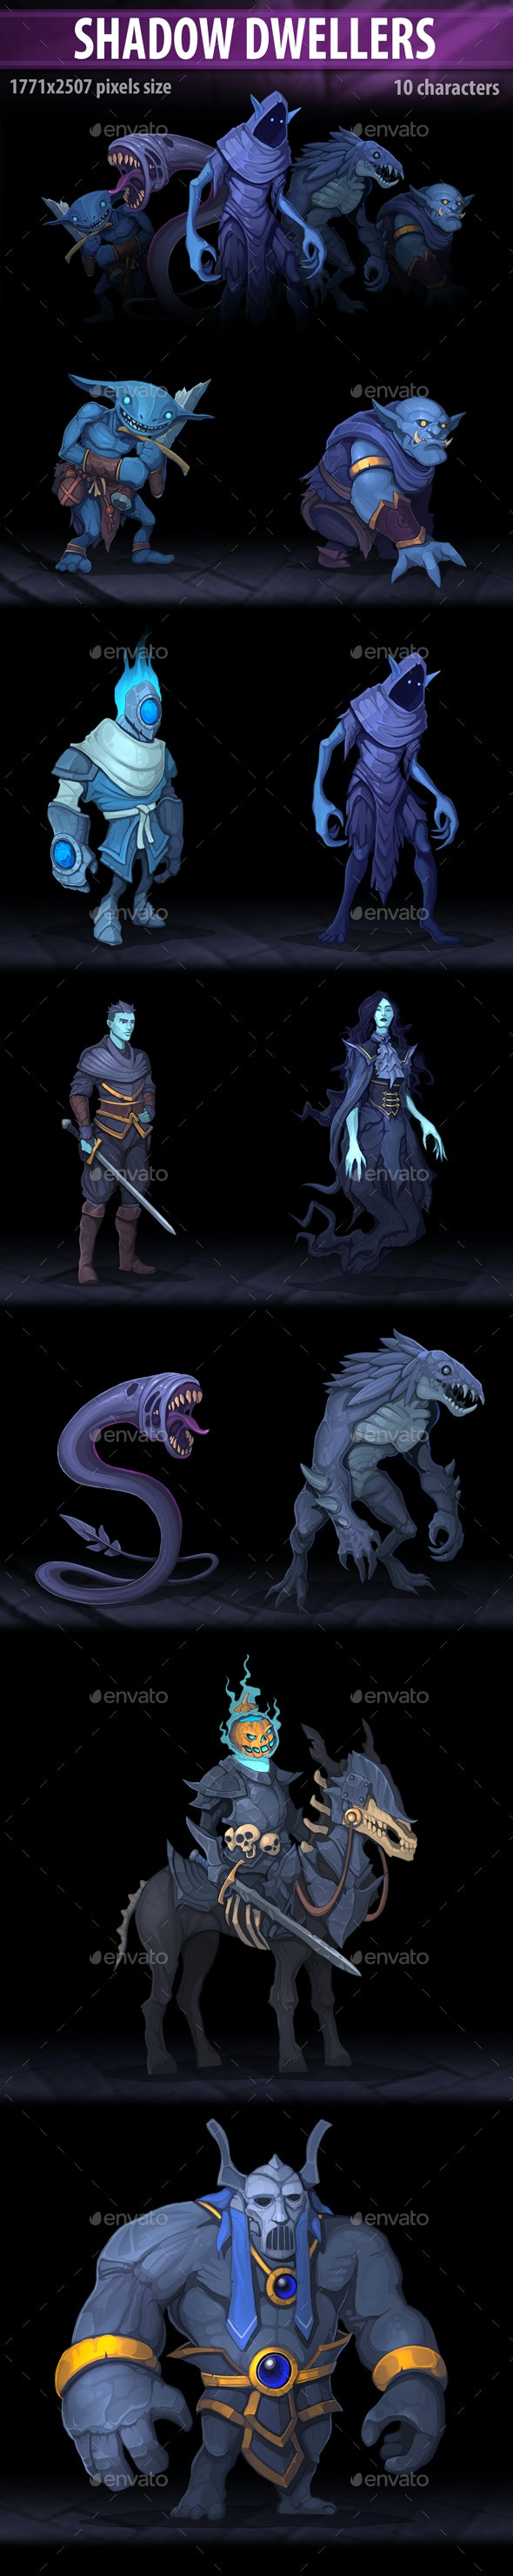 Shadow Dwellers - Miscellaneous Game Assets